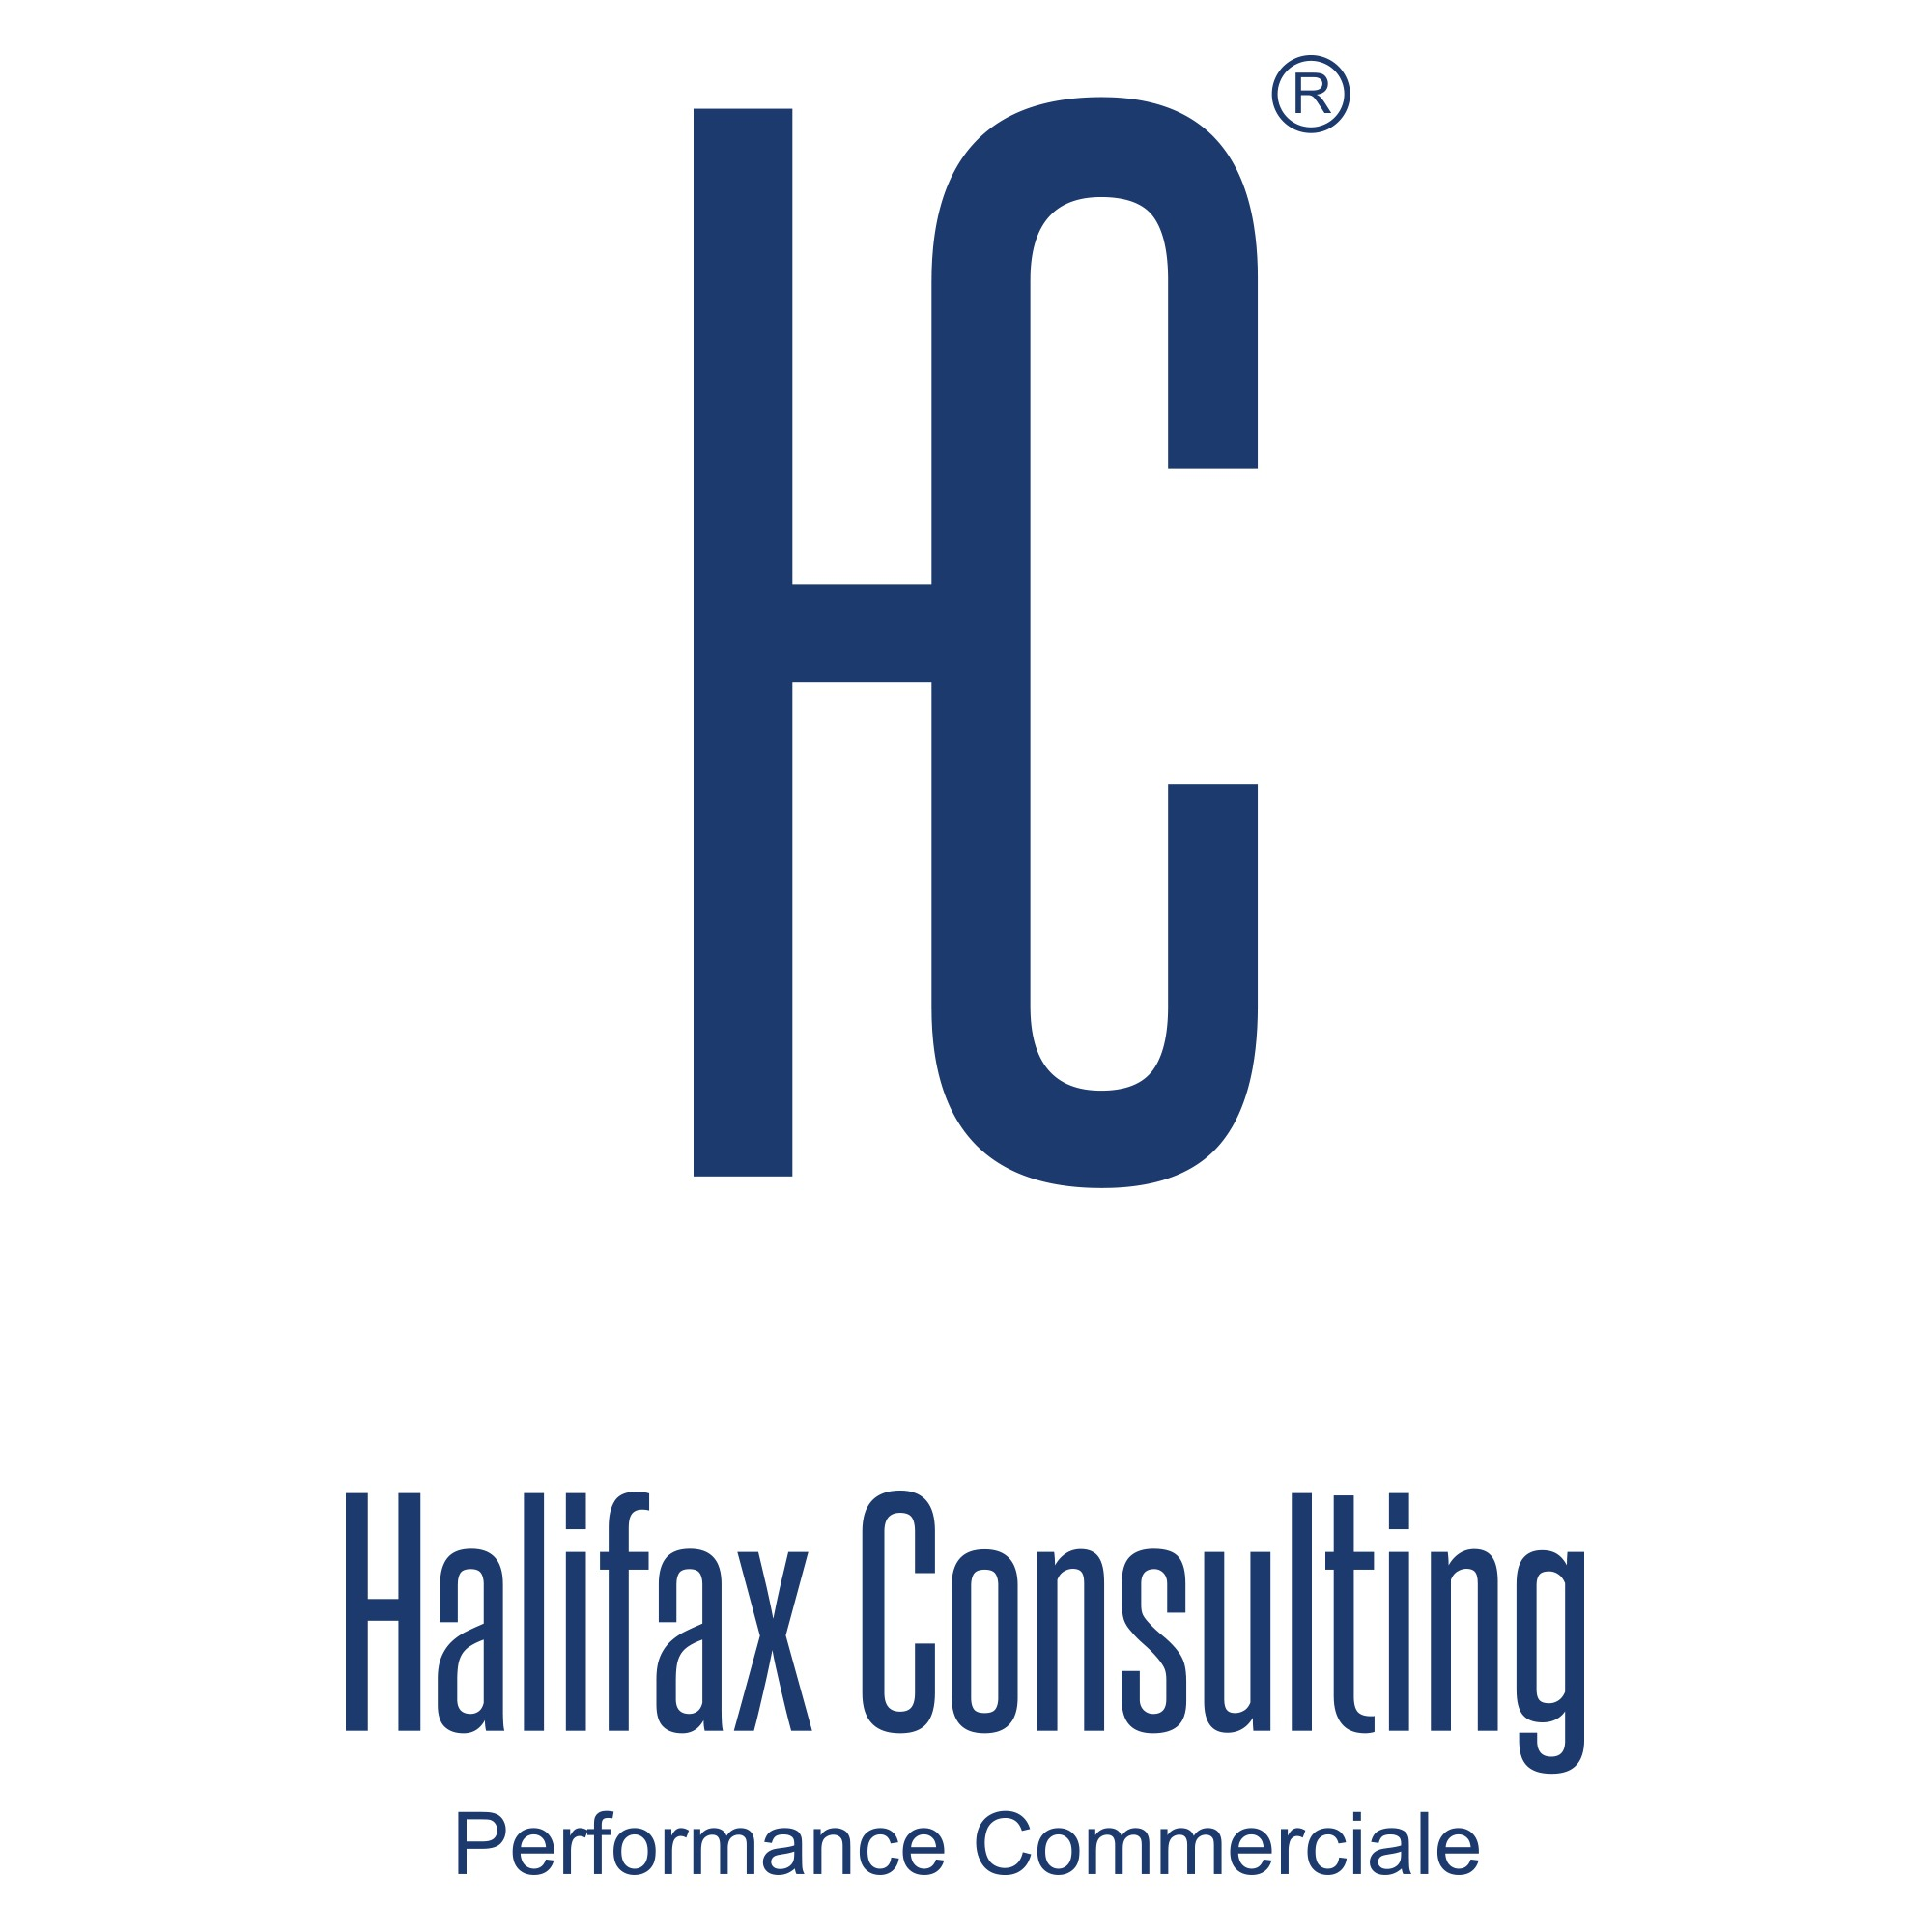 the Halifax Consulting logo.